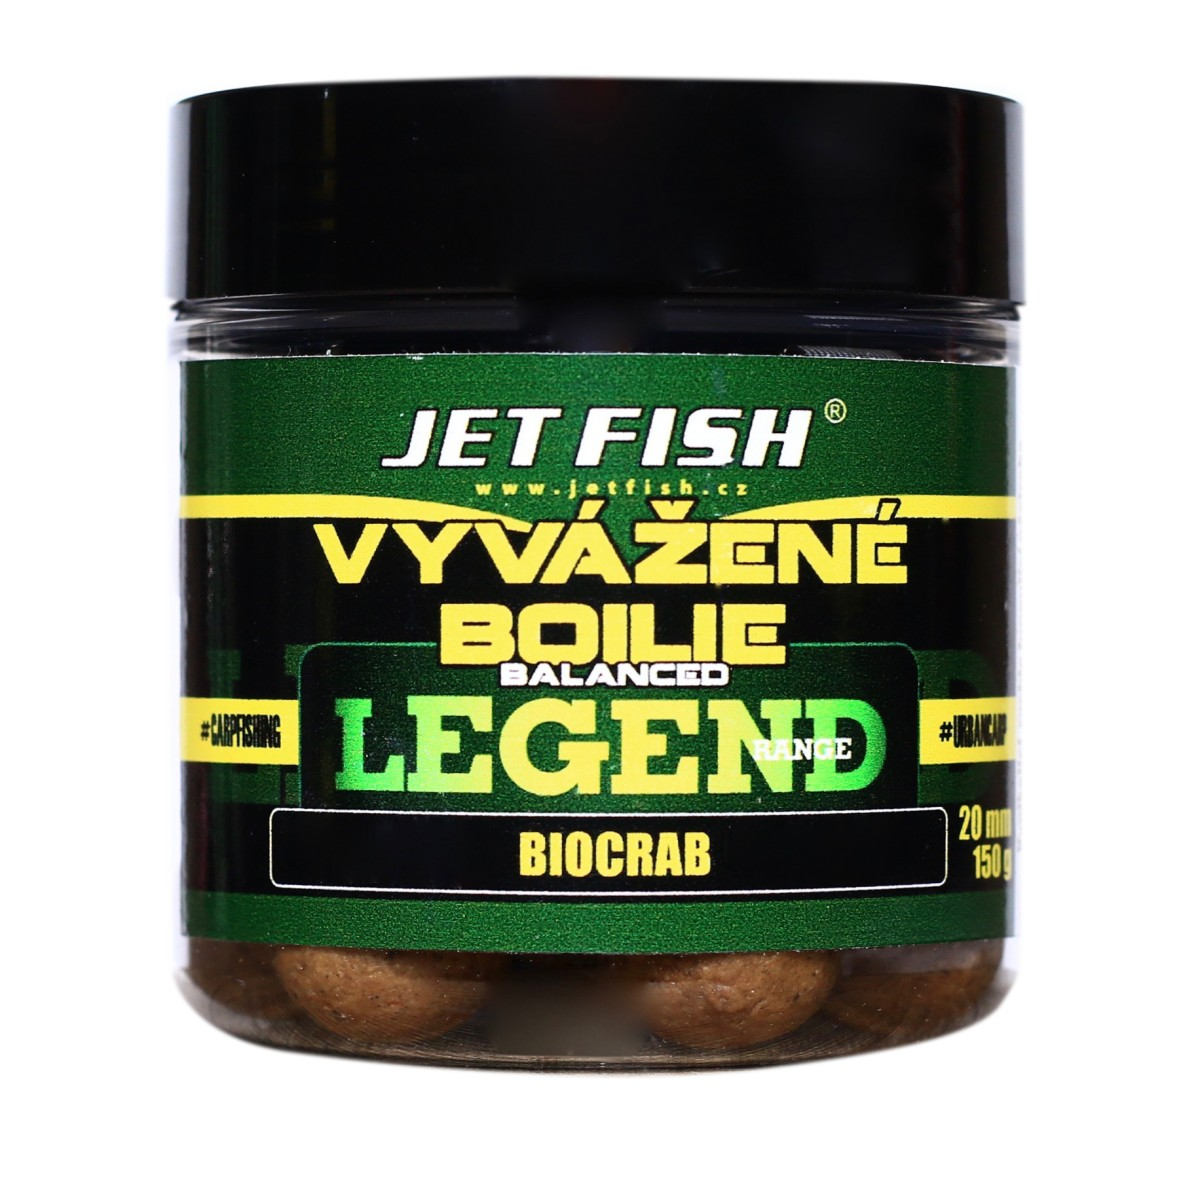 LEGEND Vyvážený boilies CHILLI TUNA-CHILLI 20mm 130g